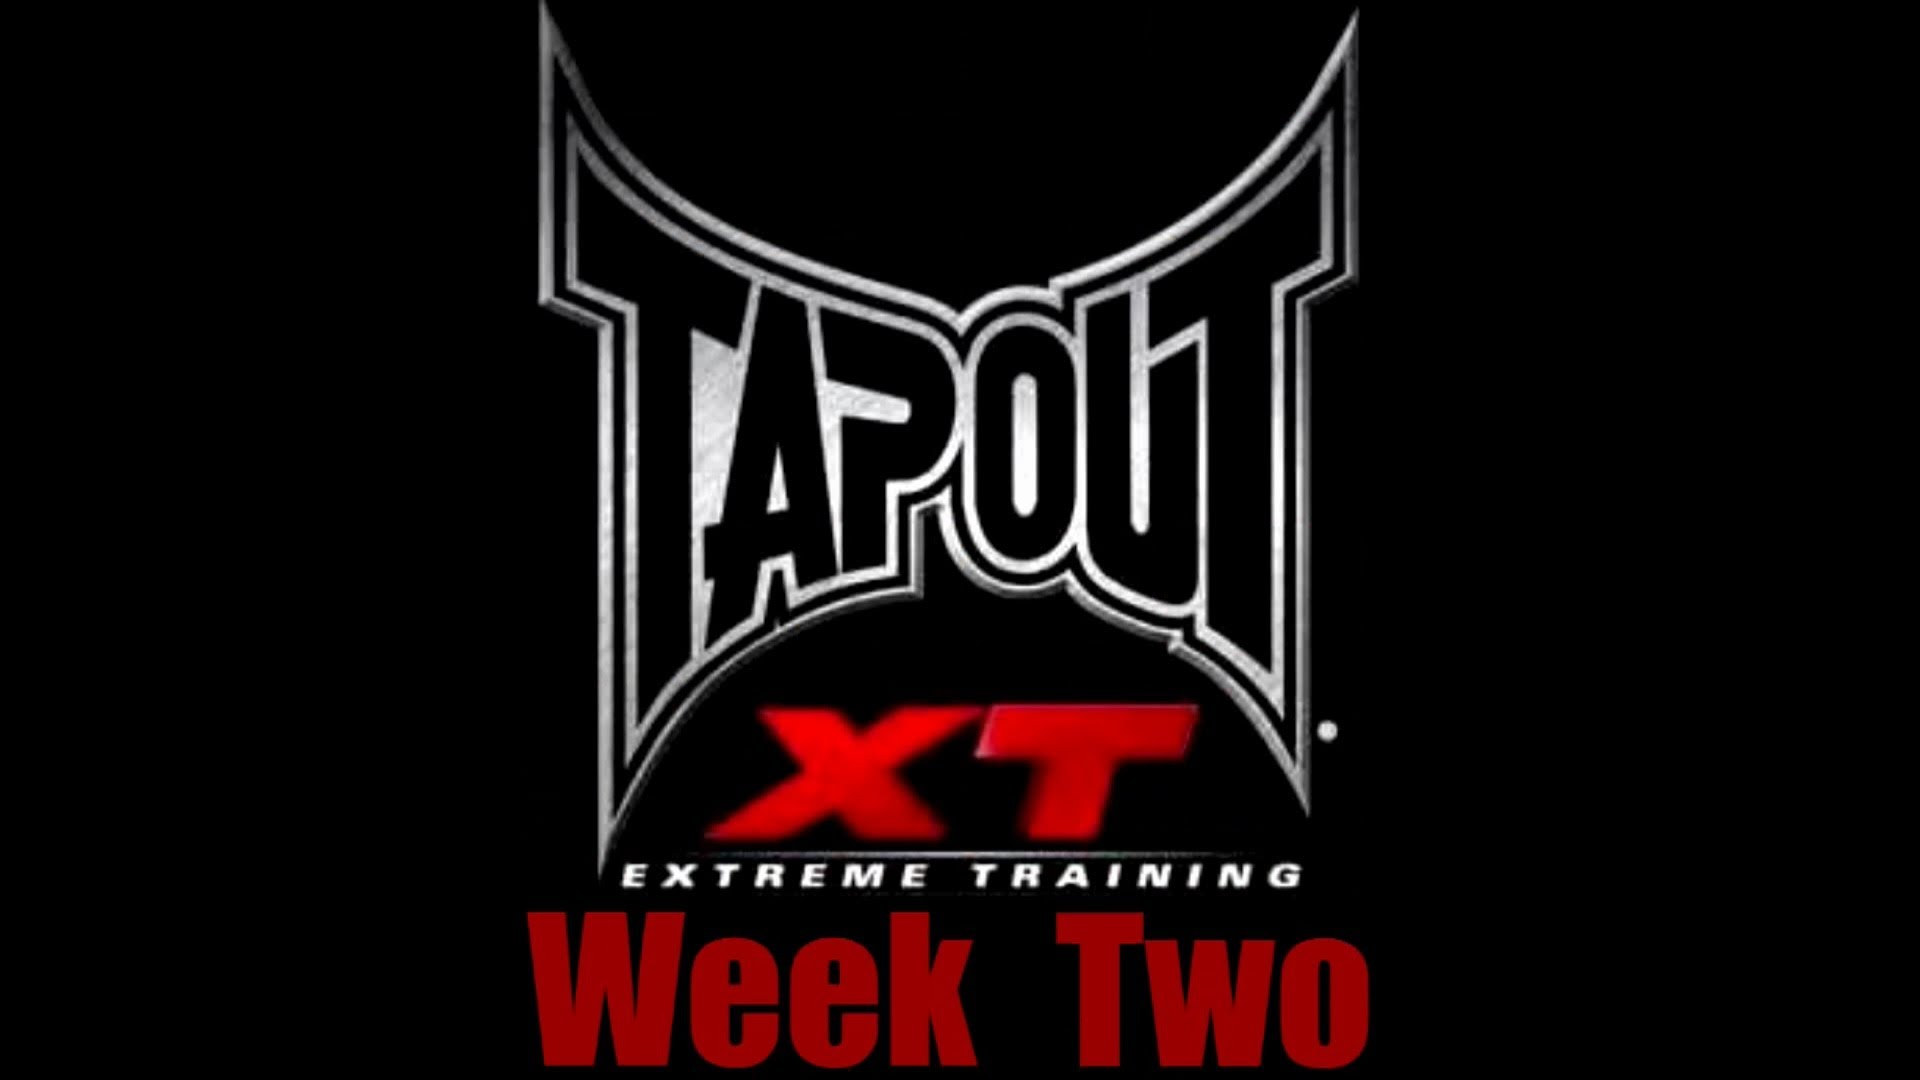 TapOut XT: Week 2 Update